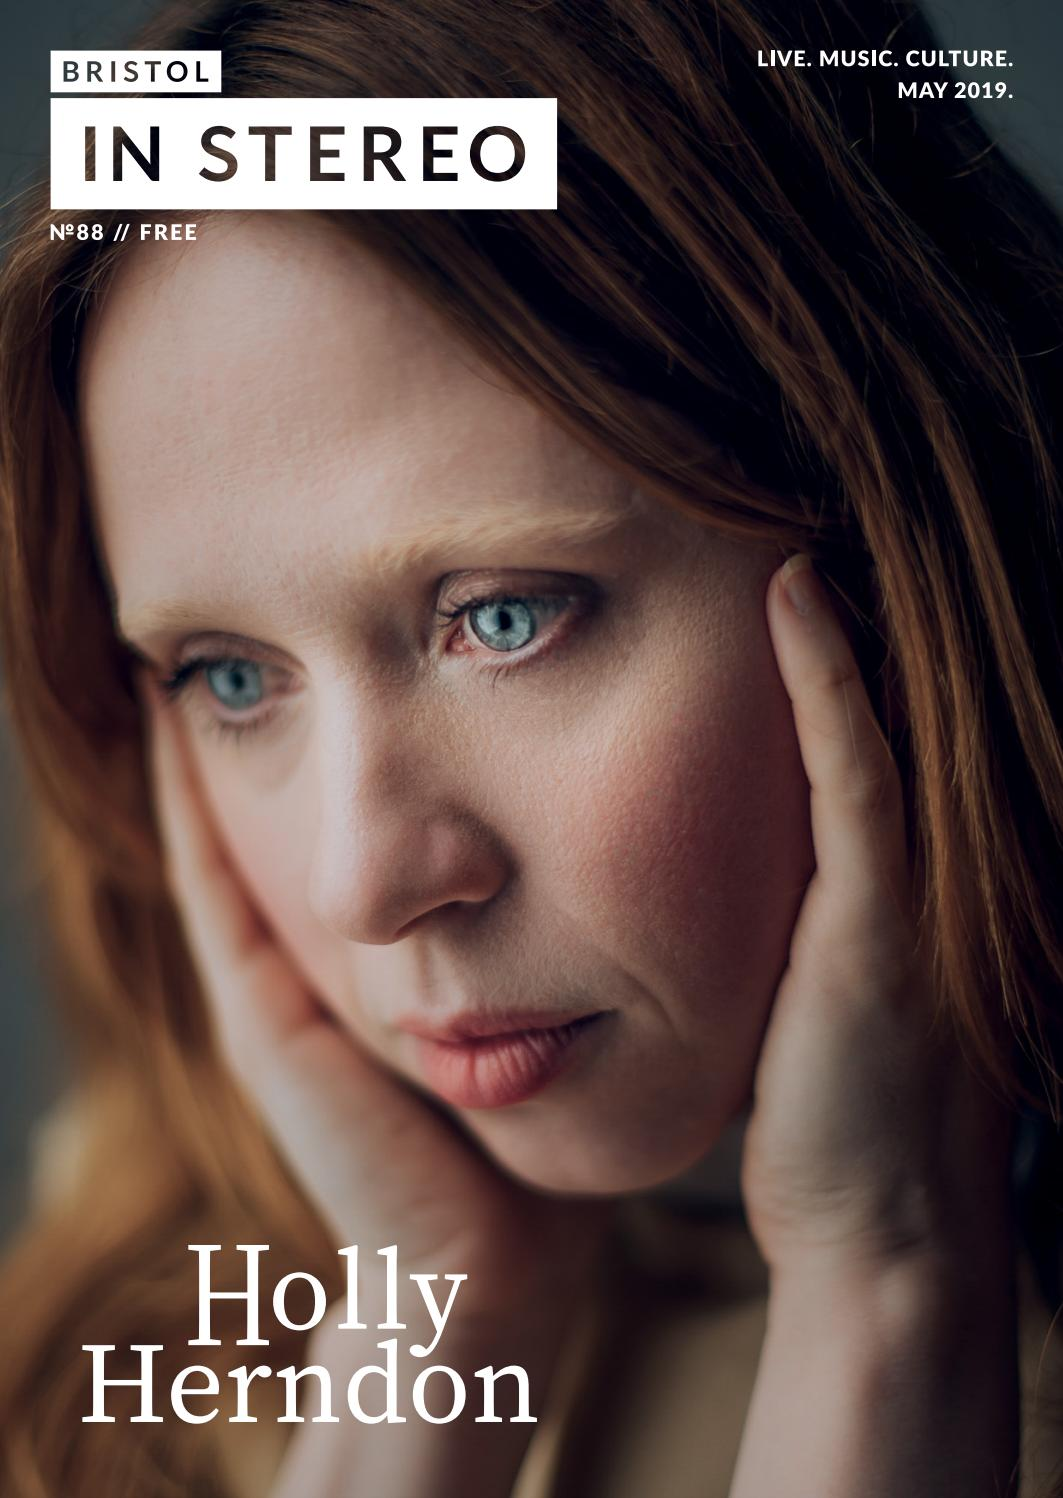 Bristol in Stereo // Holly Herndon by Bristol In Stereo - issuu